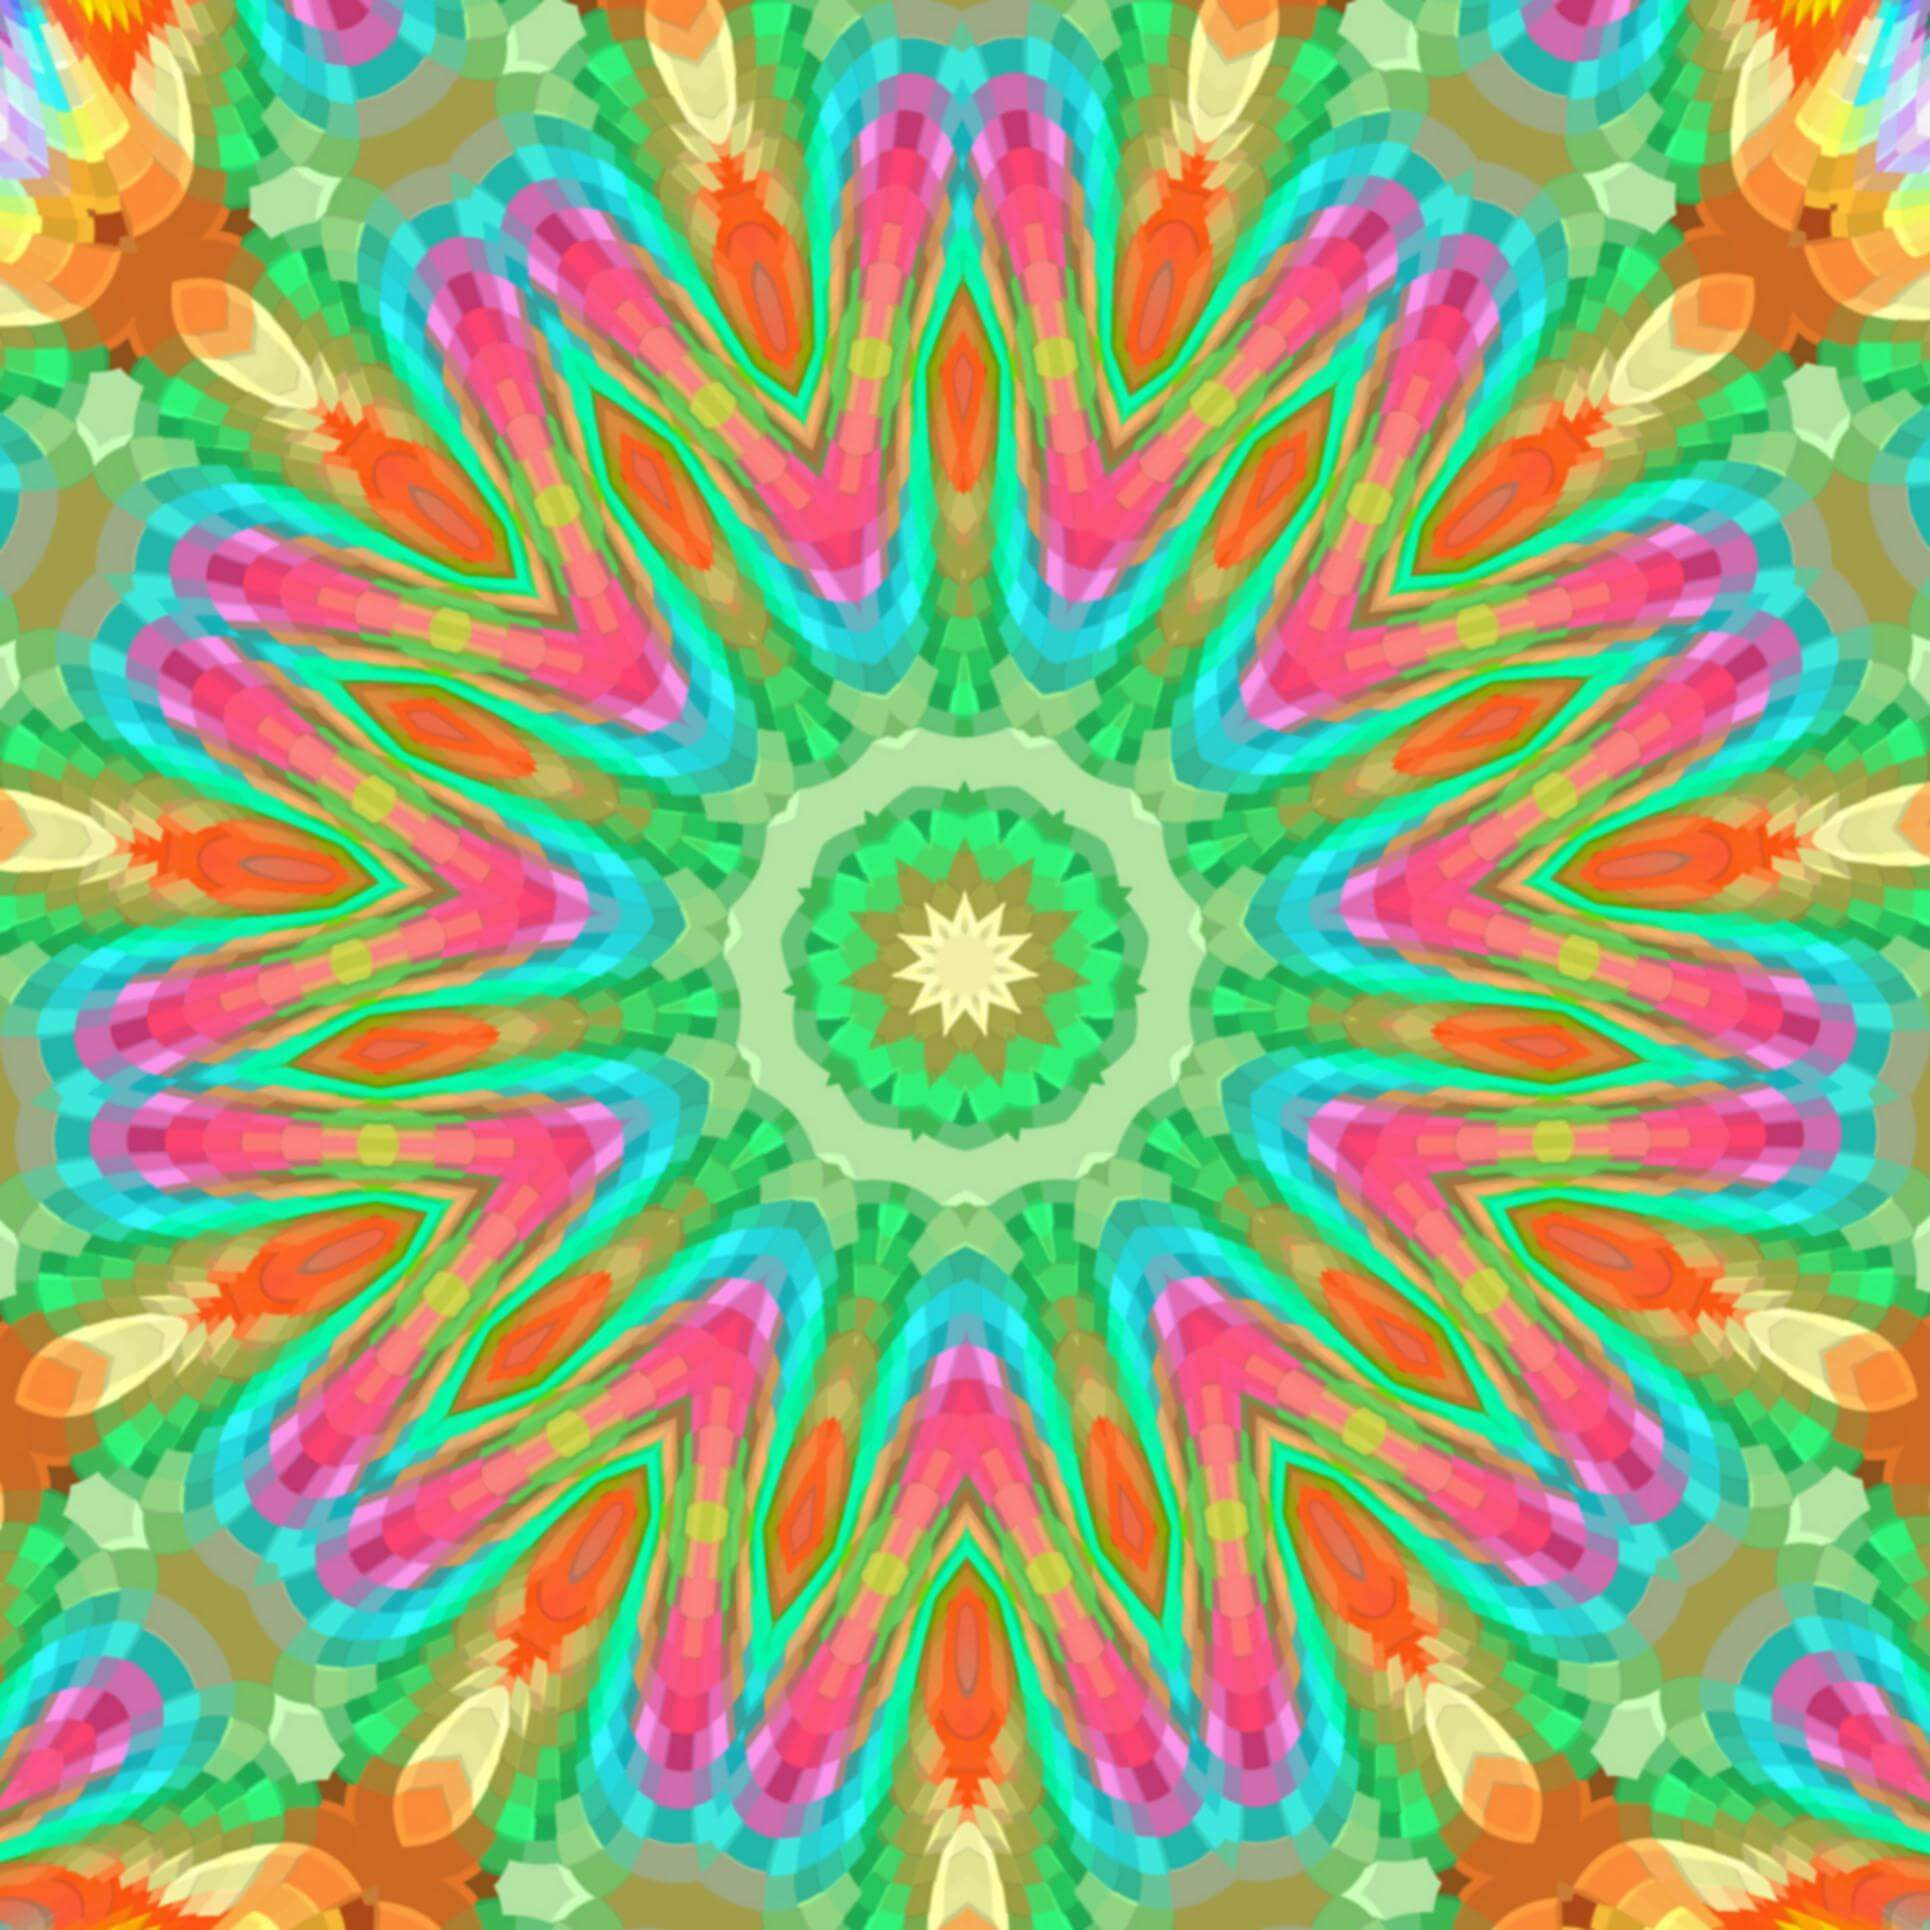 a digital artwork of a mandala